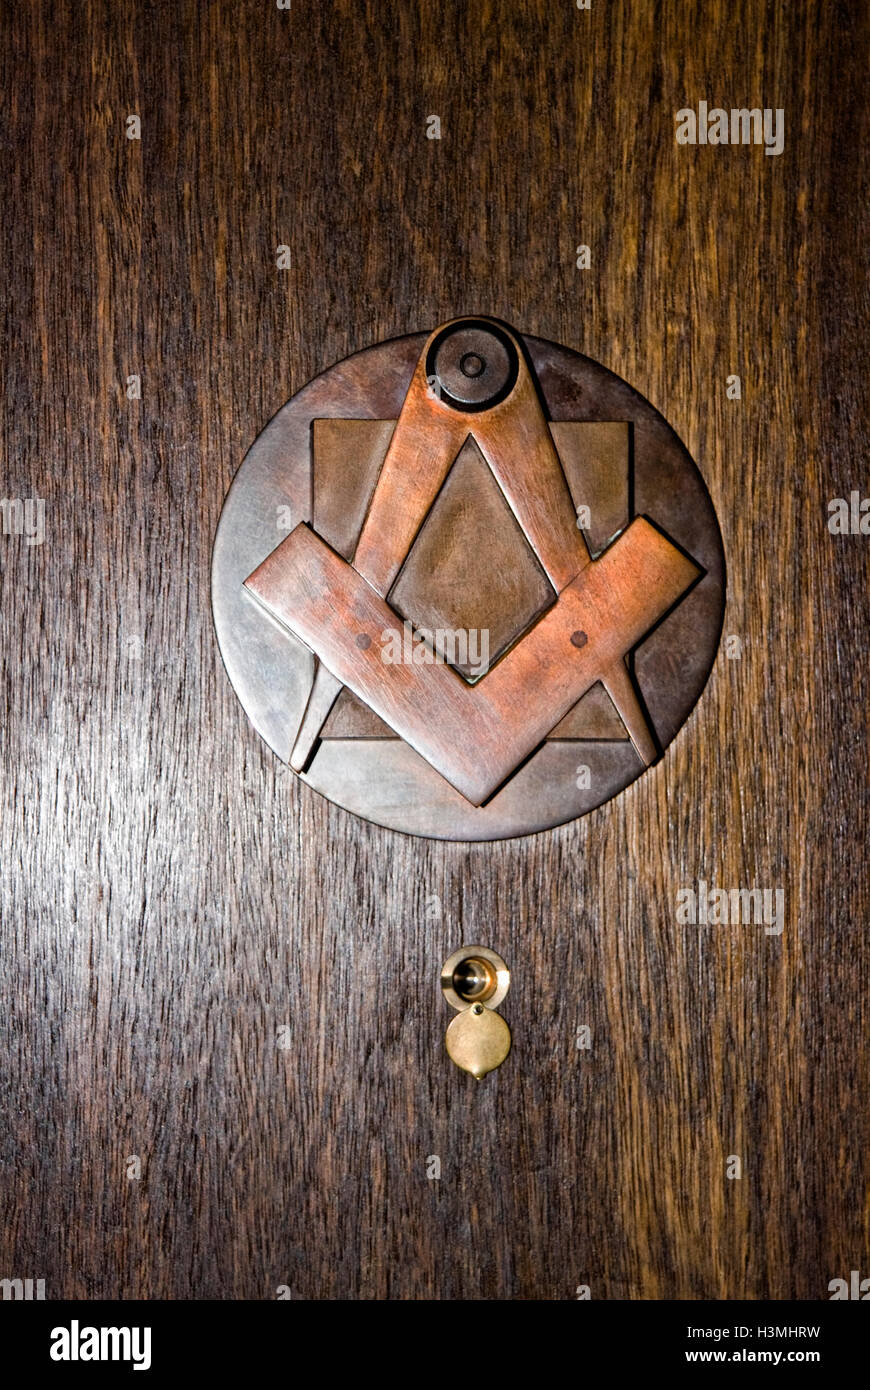 brass door knocker masonic symbols compass  square inside a masonic lodge freemason freemasonry freemason secret - Stock Image